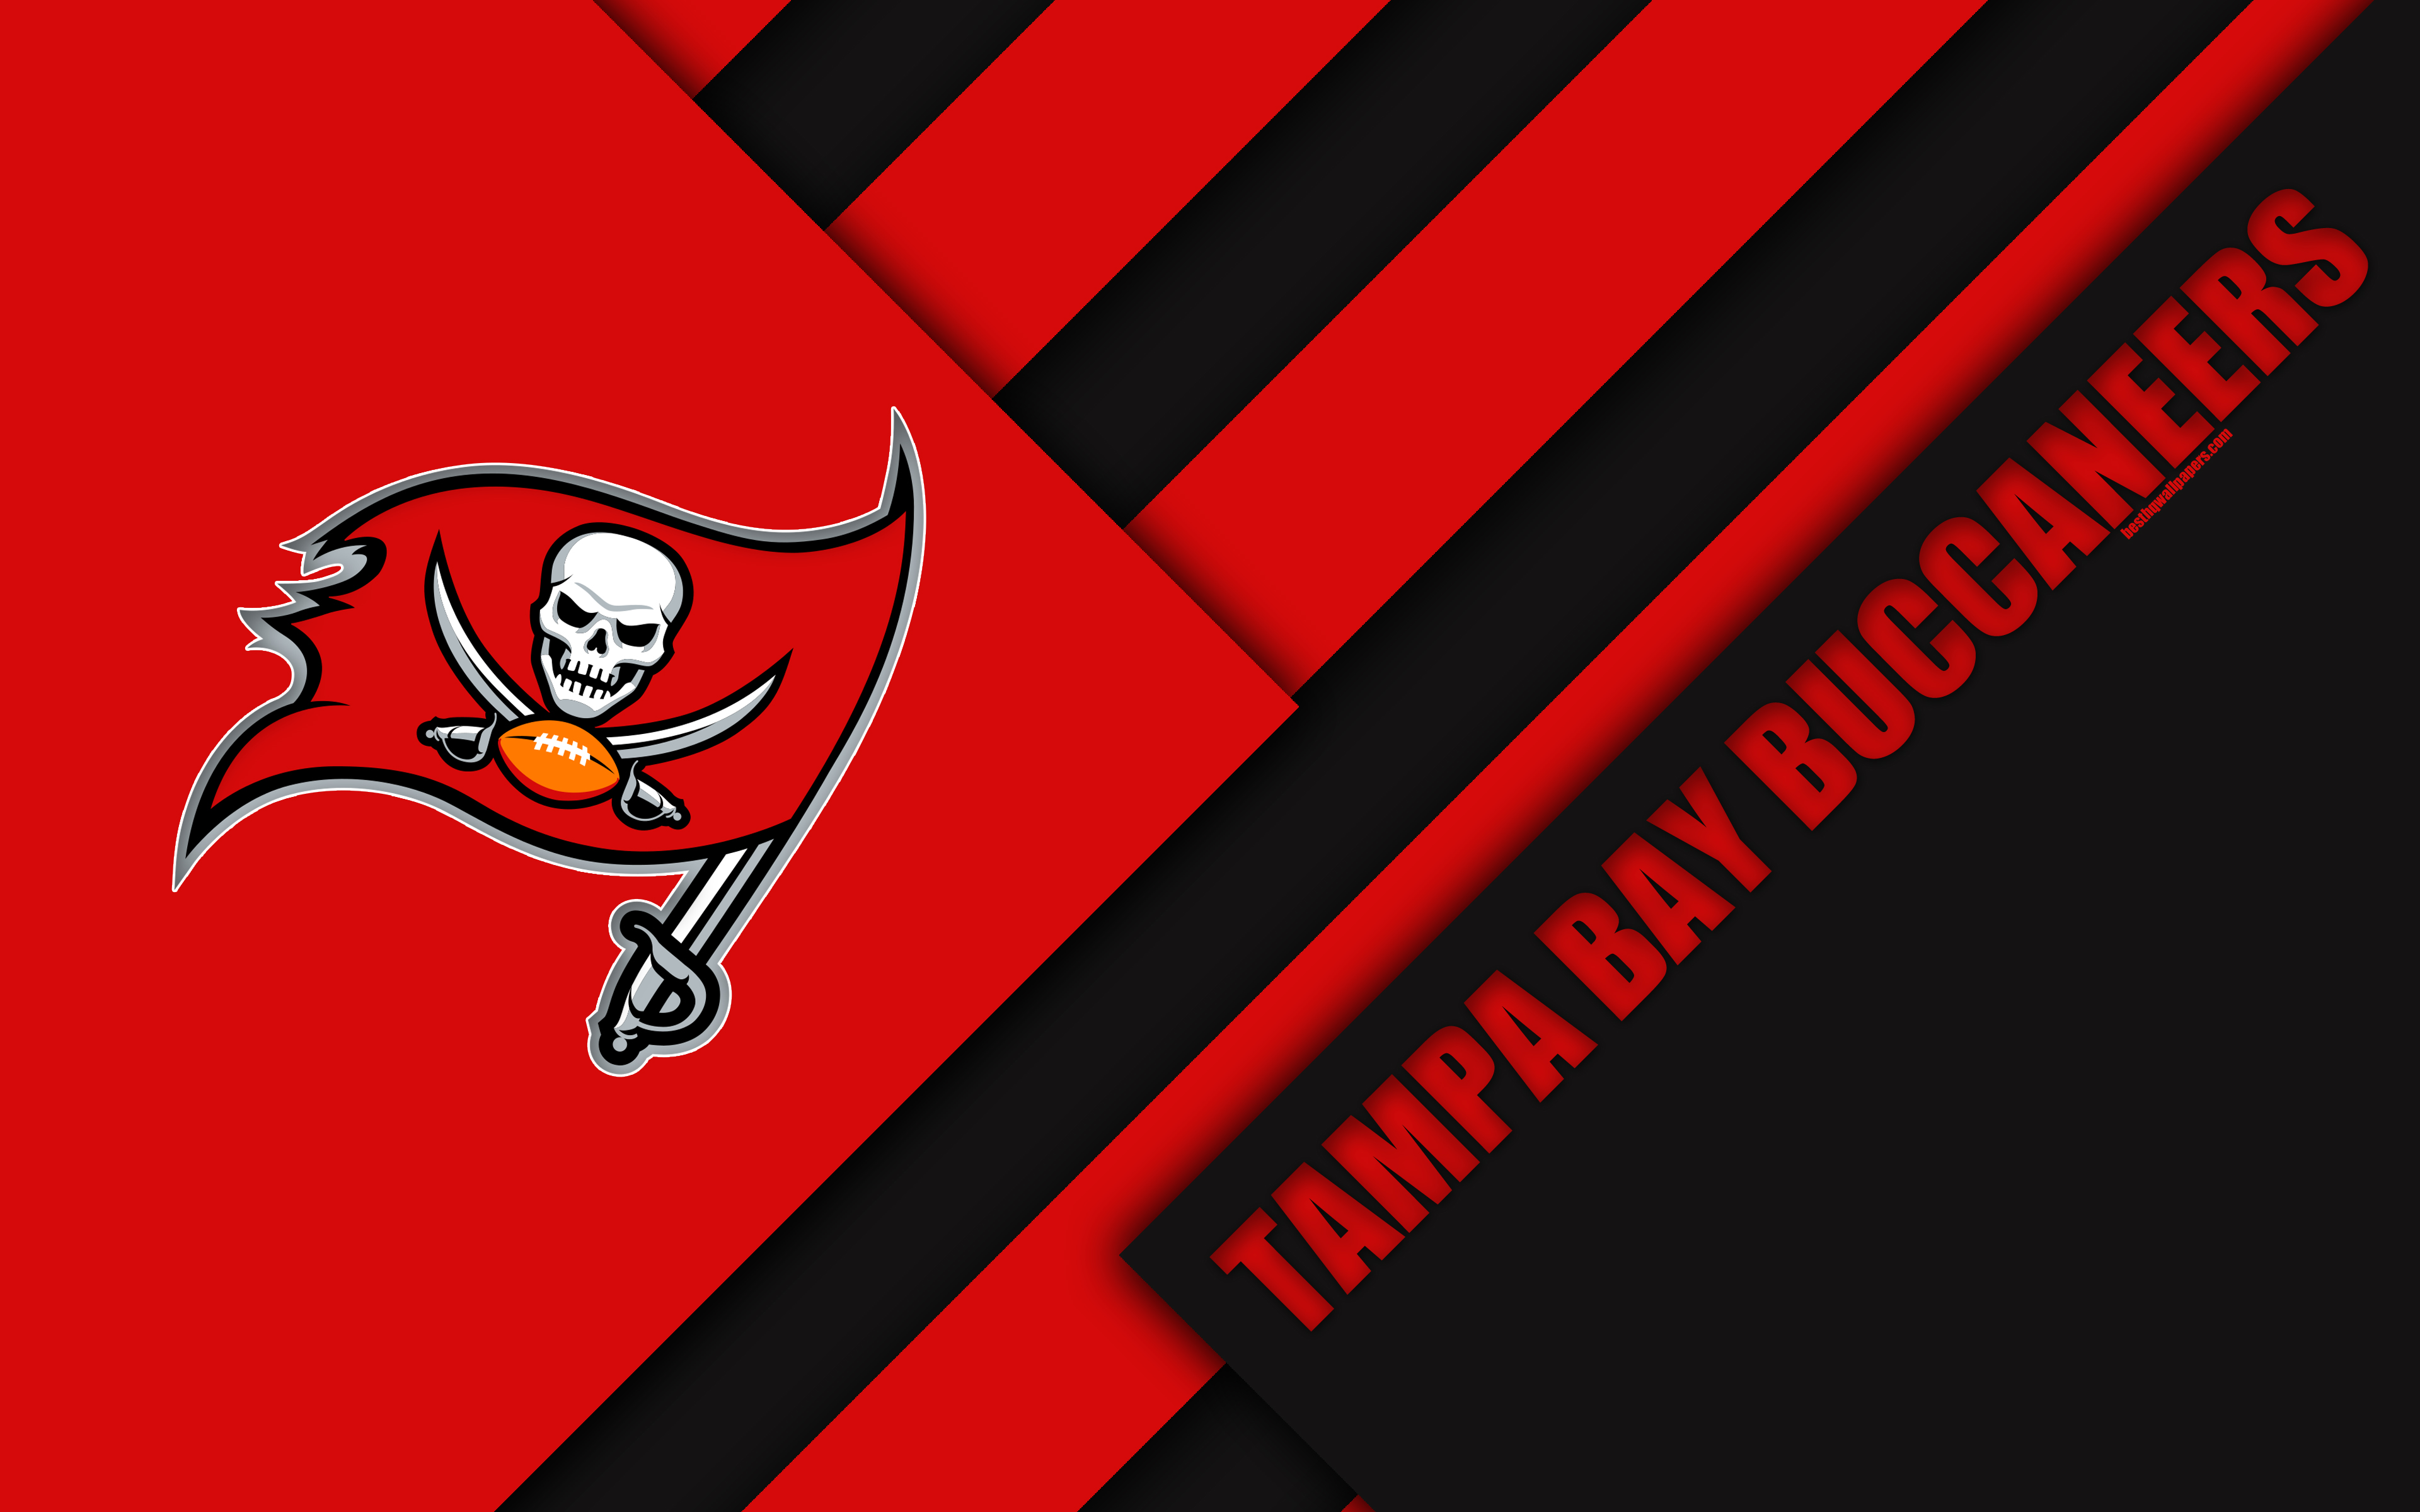 buccaneers wallpapers wallpaper cave buccaneers wallpapers wallpaper cave